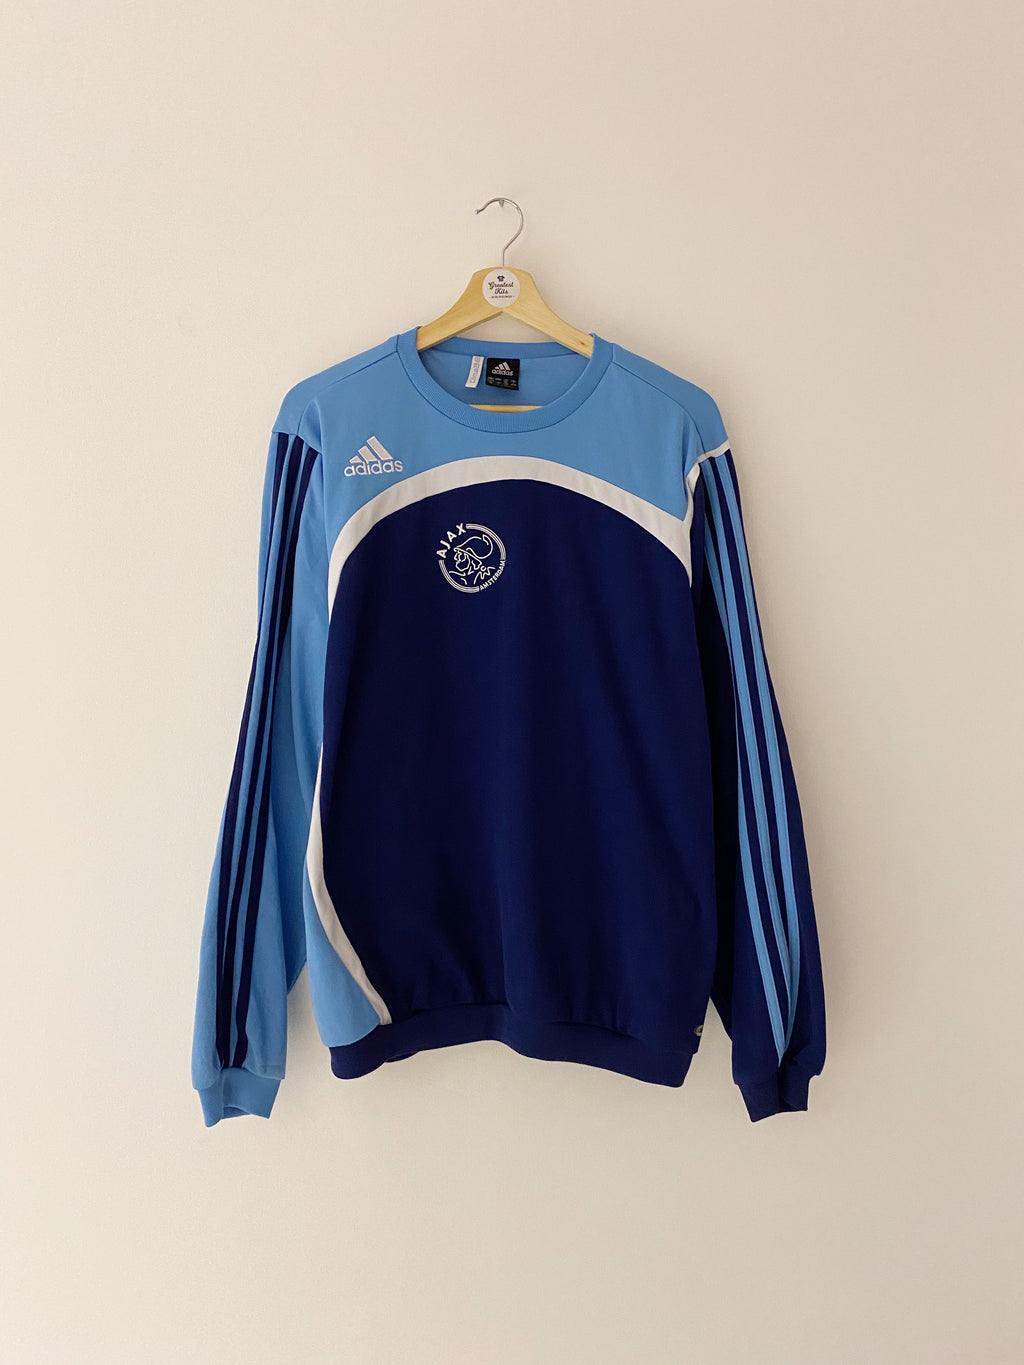 2007/08 Ajax Training Jumper (L) 7/10